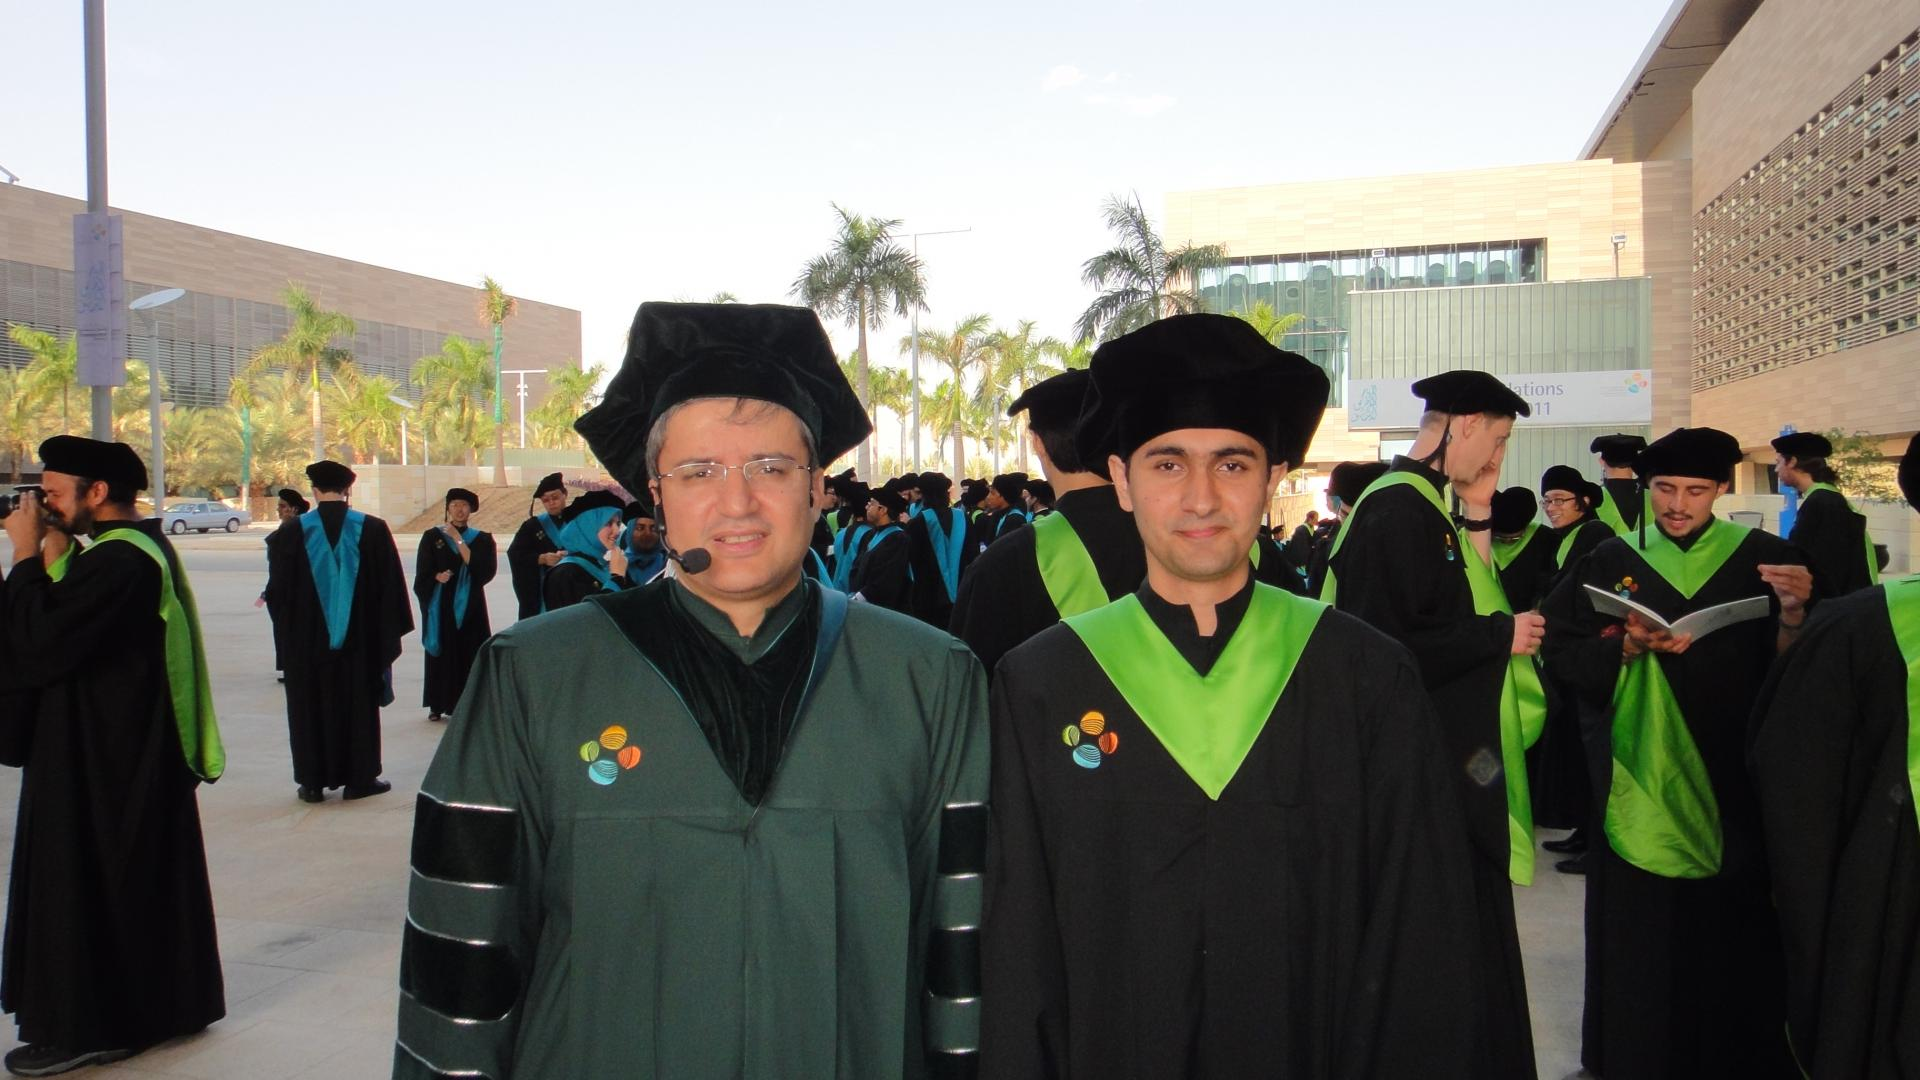 Faraan Rashid With Professor Mohamed-Slim Alouini on His Graduation